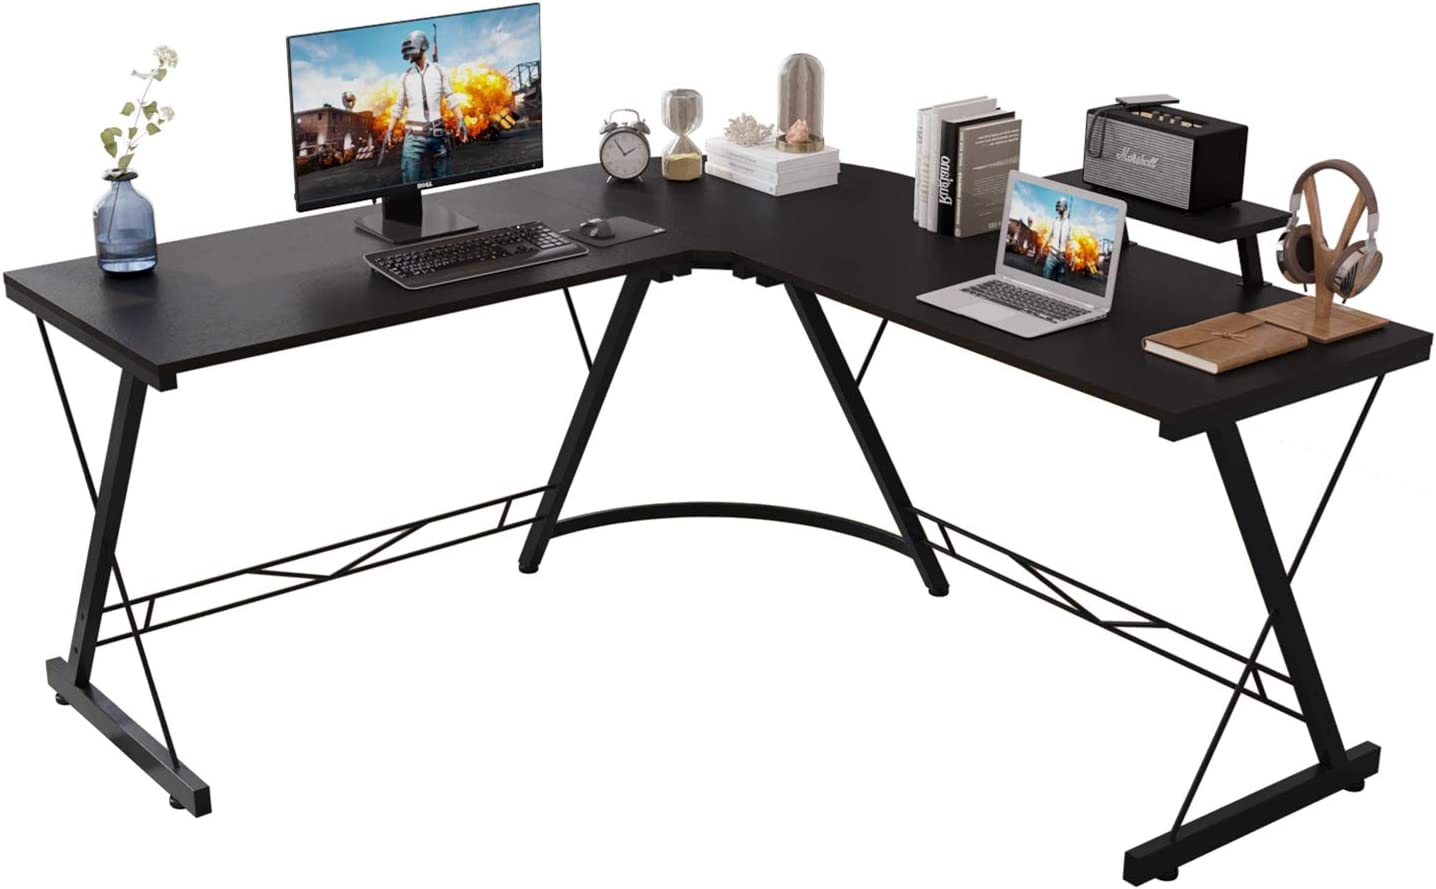 Corner Side L Shaped Table, Home Office Computer Desk with Small Desktop Shelf, Study Writing Desk with Round Fillet Edge, Desks for SOHO/Workstation, Gaming Workstation with Monitor Stand (JetBlack)